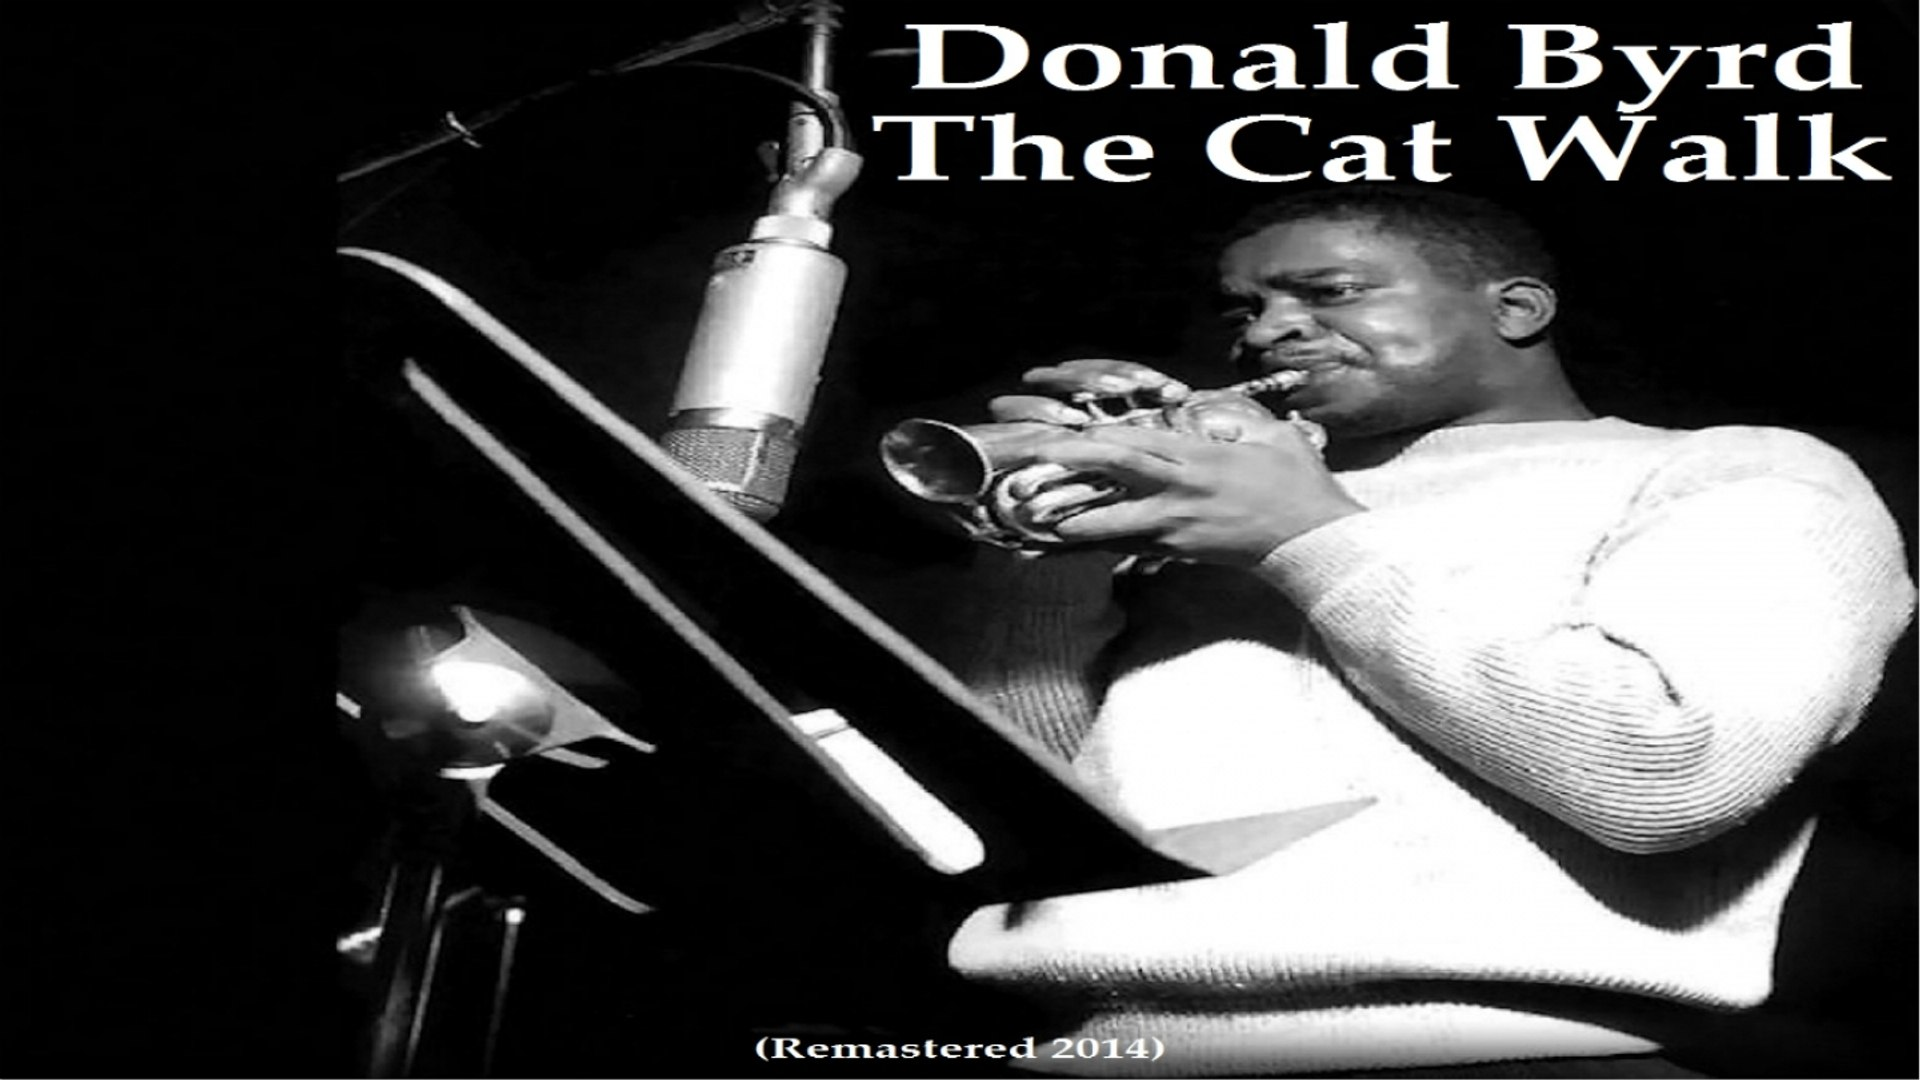 Donald Byrd - The Cat Walk - Remastered 2014